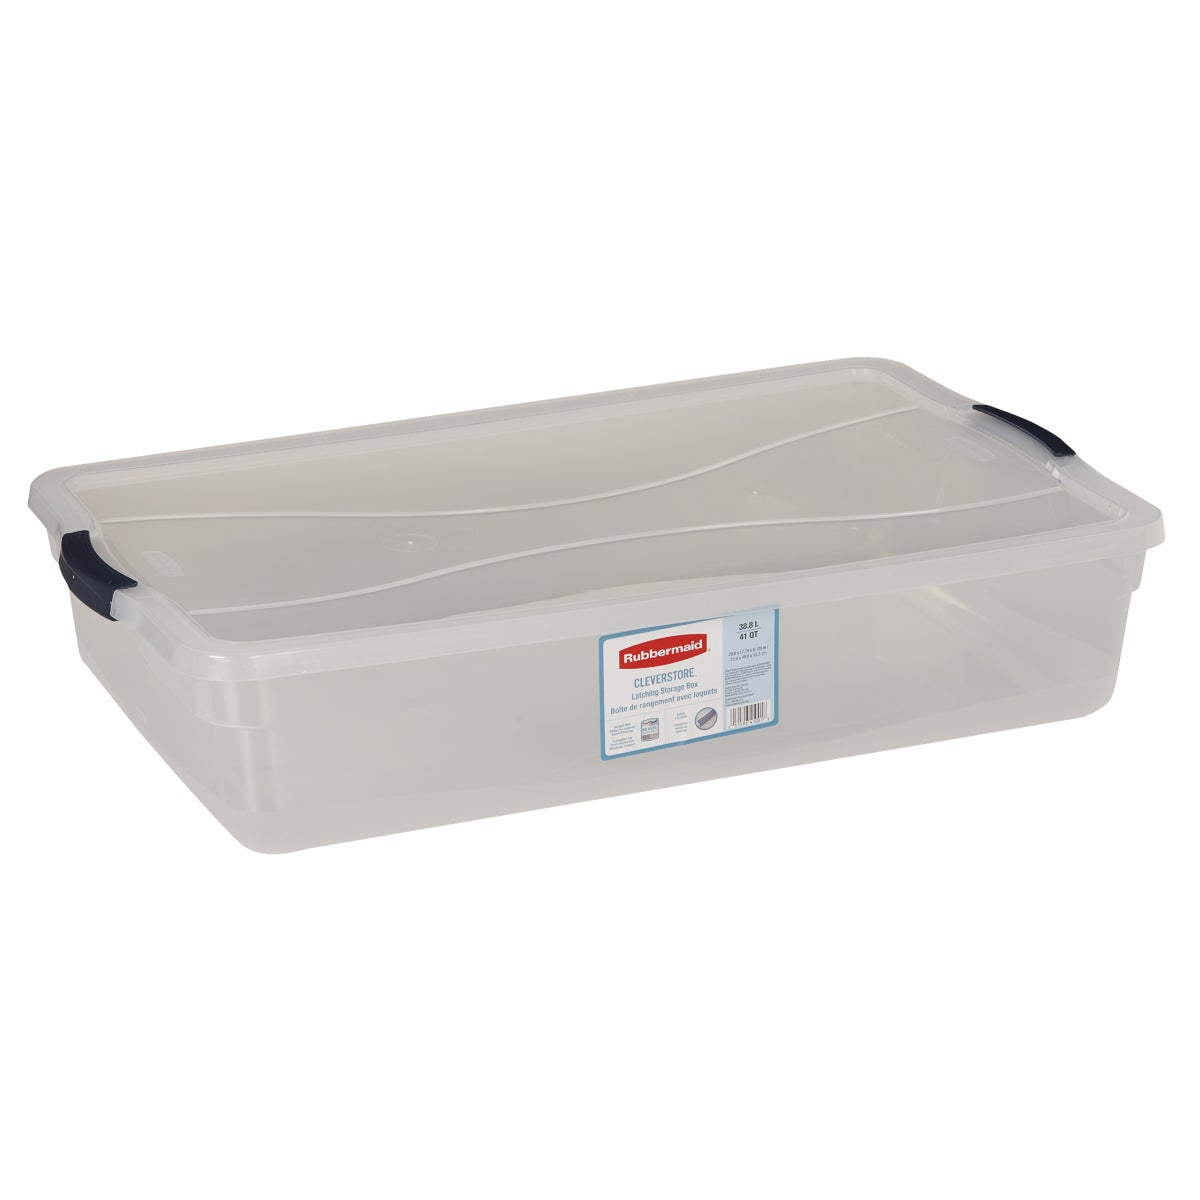 41QT LATCHING STORAGE - 3Q2900CLMCB by Rubbermaid Home